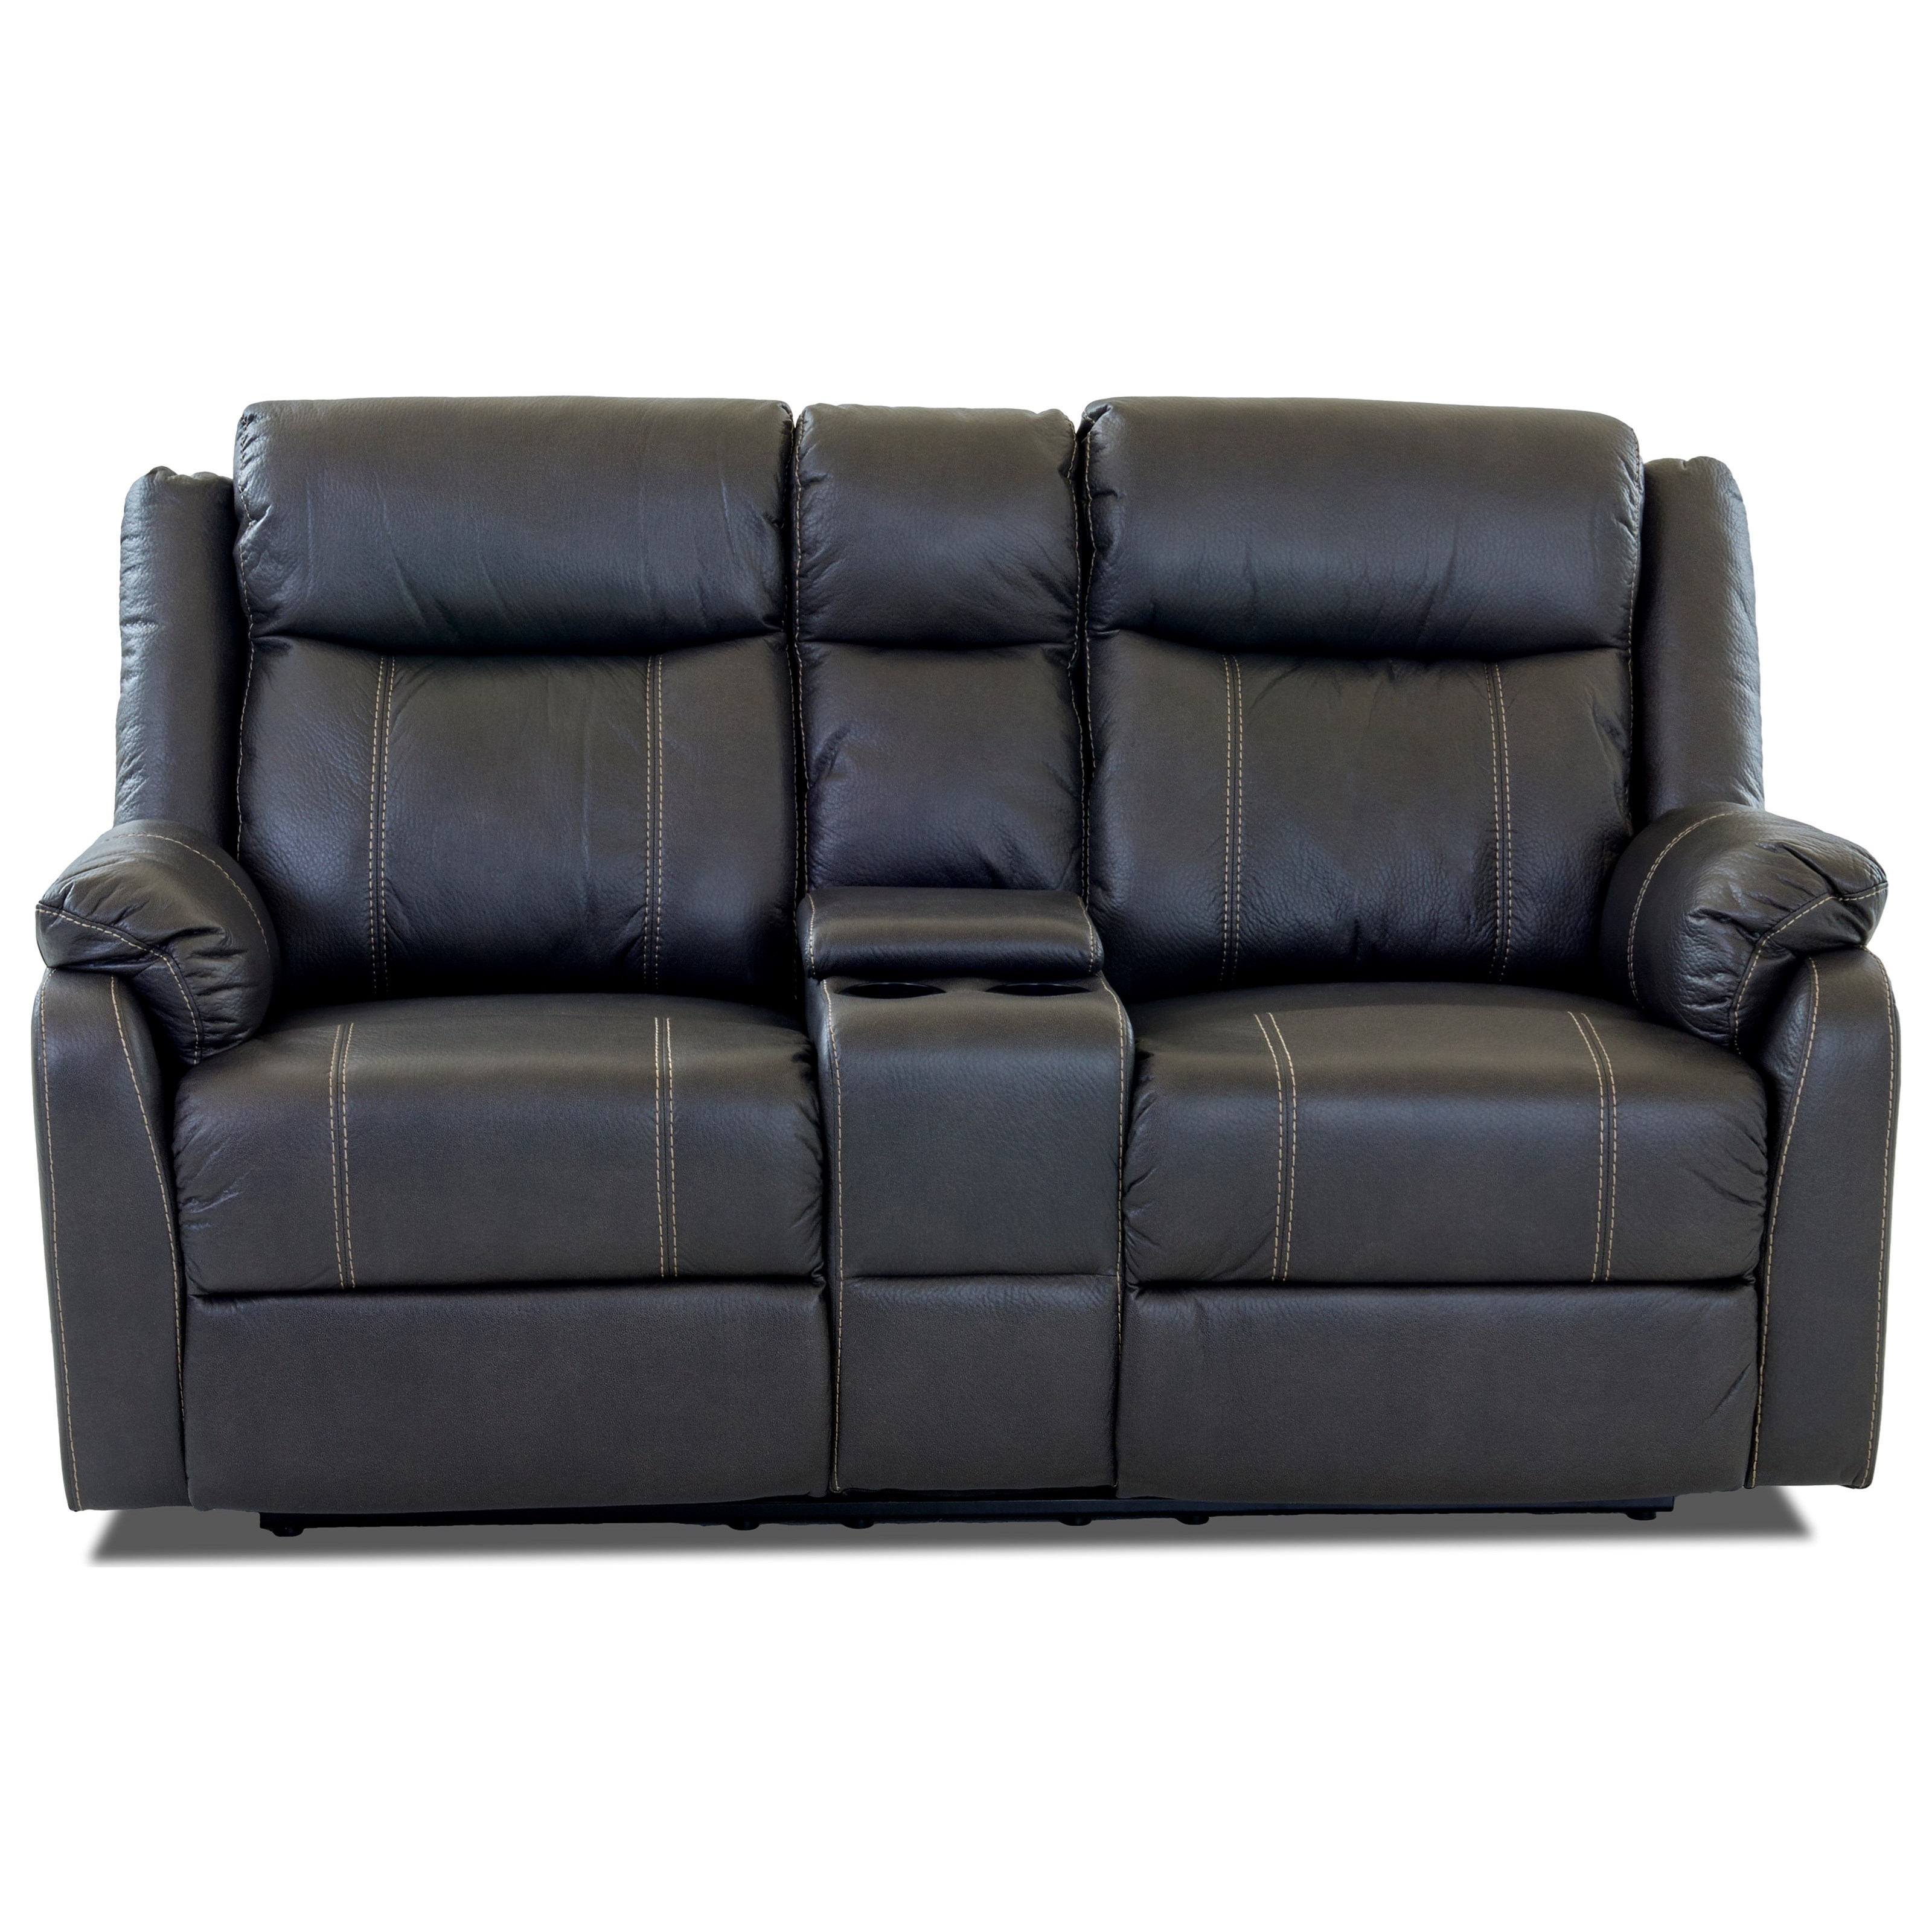 Domino-US Console Reclining Loveseat by Klaussner International at Catalog Outlet